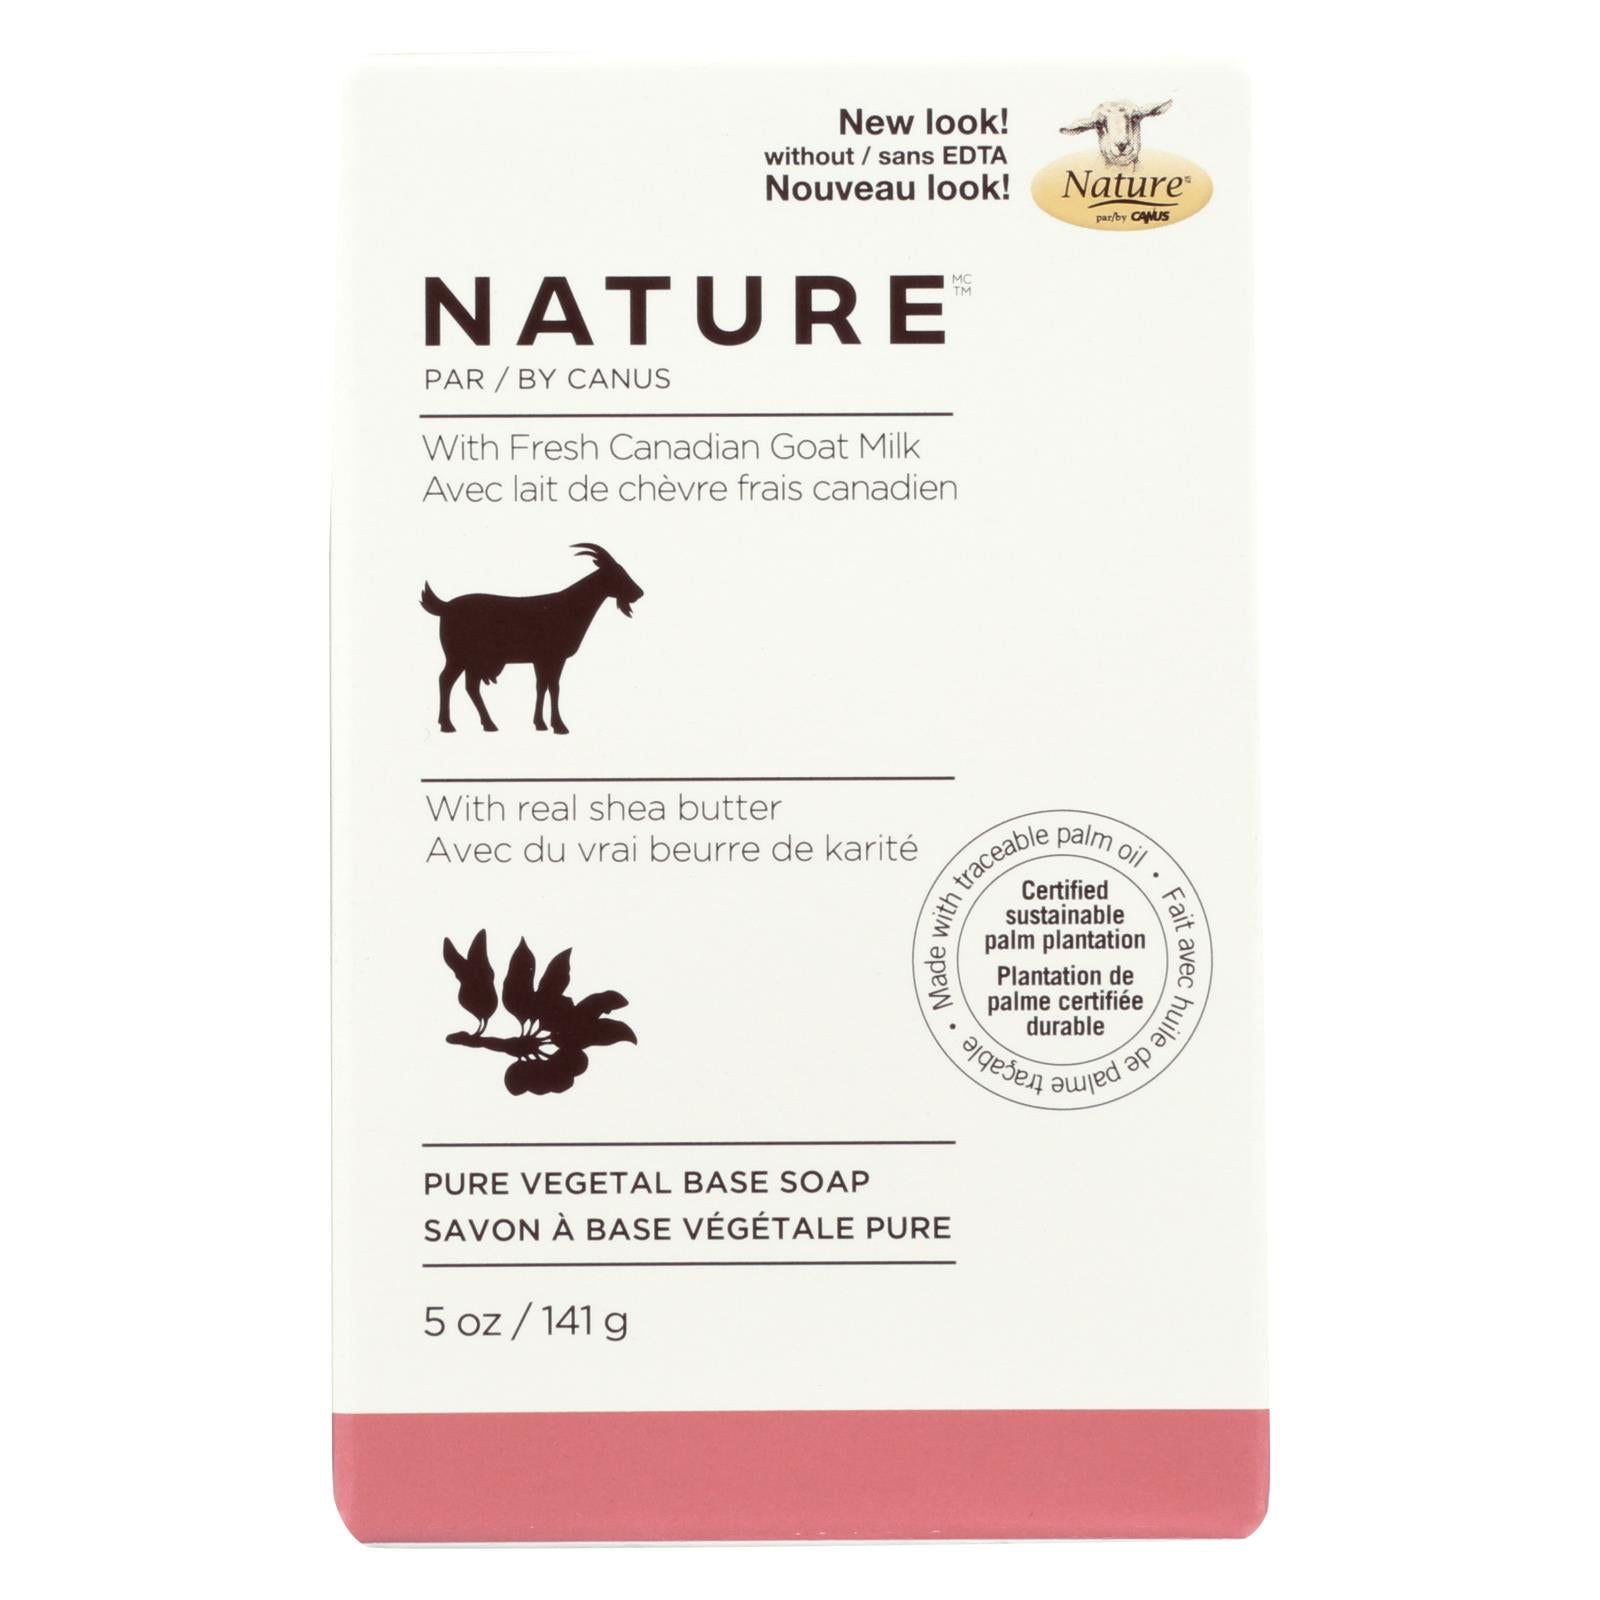 Buy Nature By Canus Bar Soap - Nature - Shea Butter - 5 oz - Bar Soap from Veroeco.com